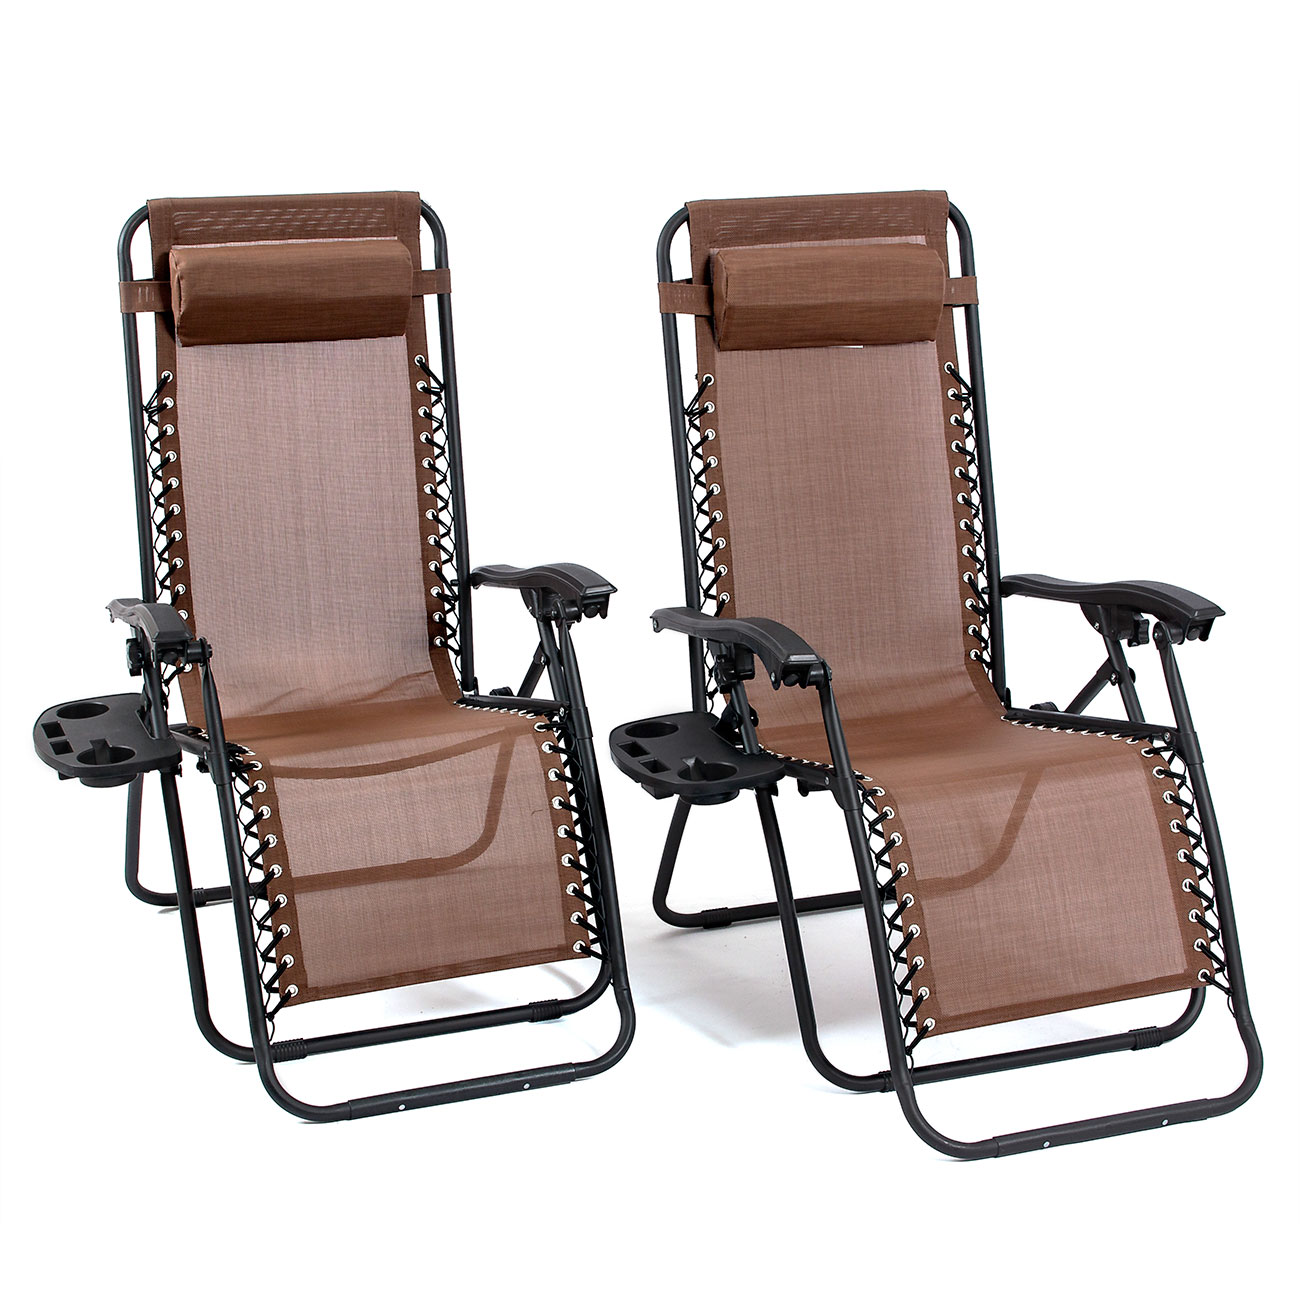 Indoor Zero Gravity Chair 1 Pair Brown Zero Gravity Lounge Chairs Recliner Outdoor